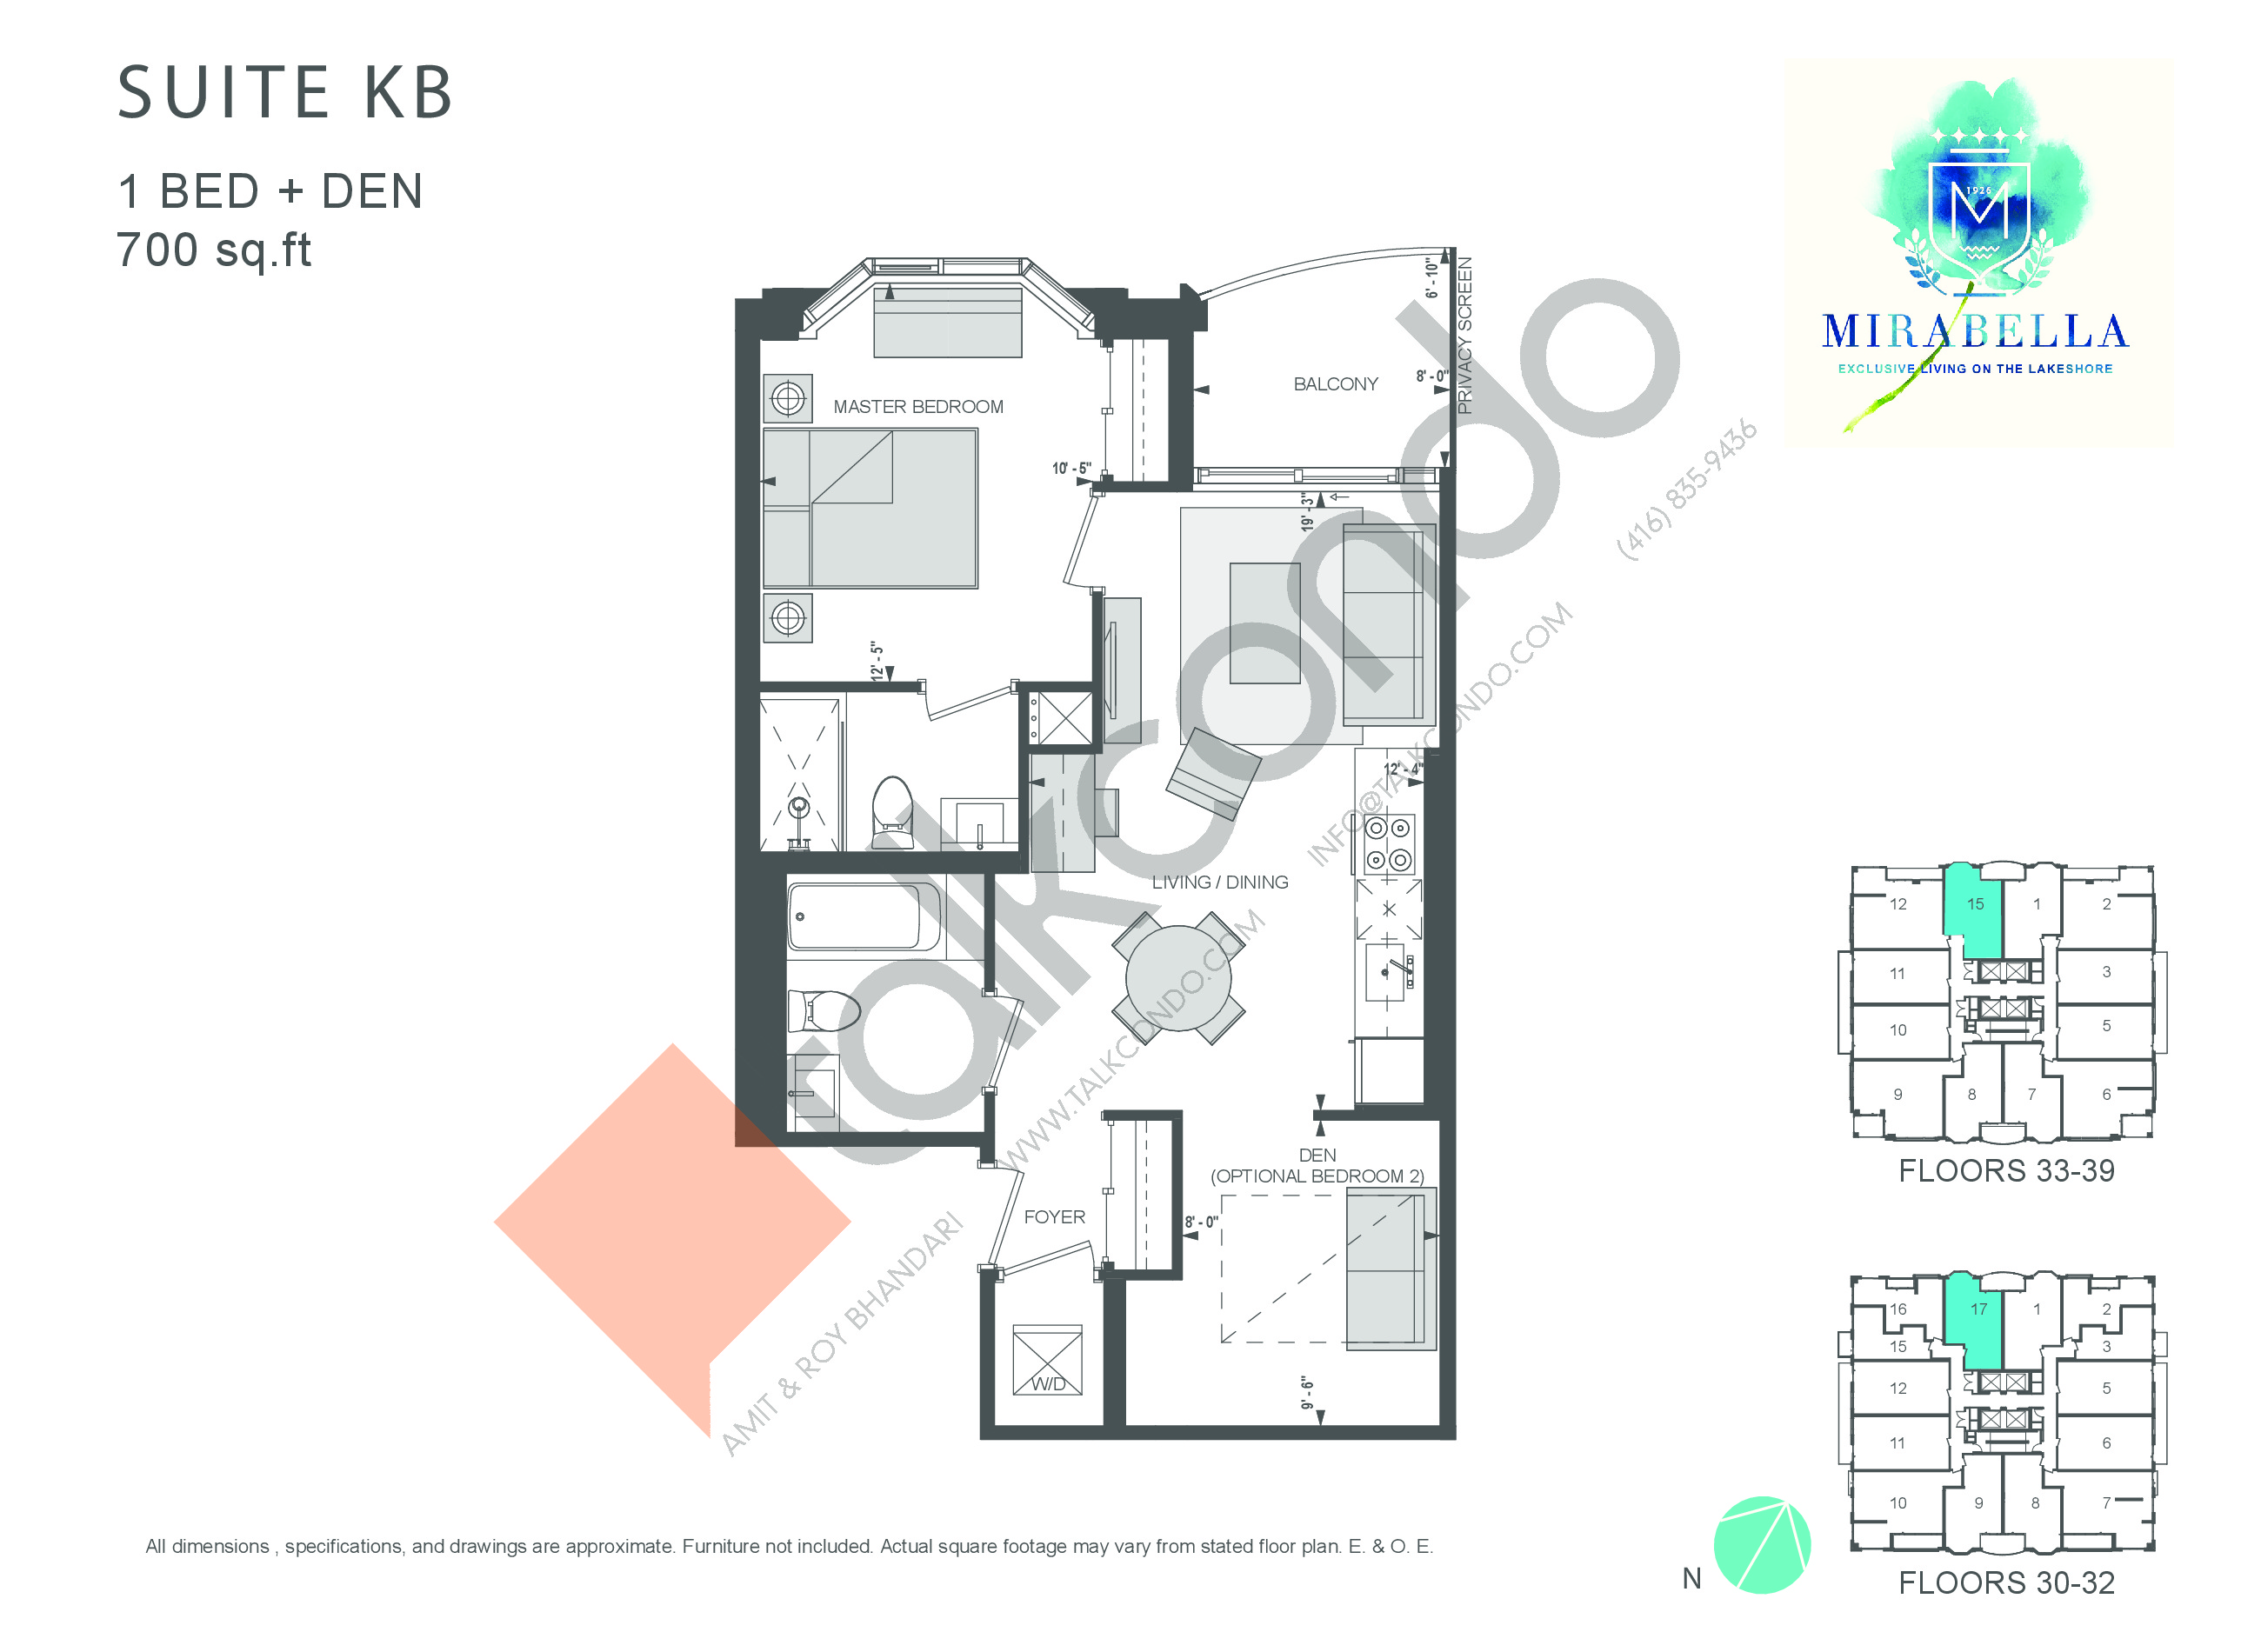 Suite KB Floor Plan at Mirabella Luxury Condos East Tower - 700 sq.ft